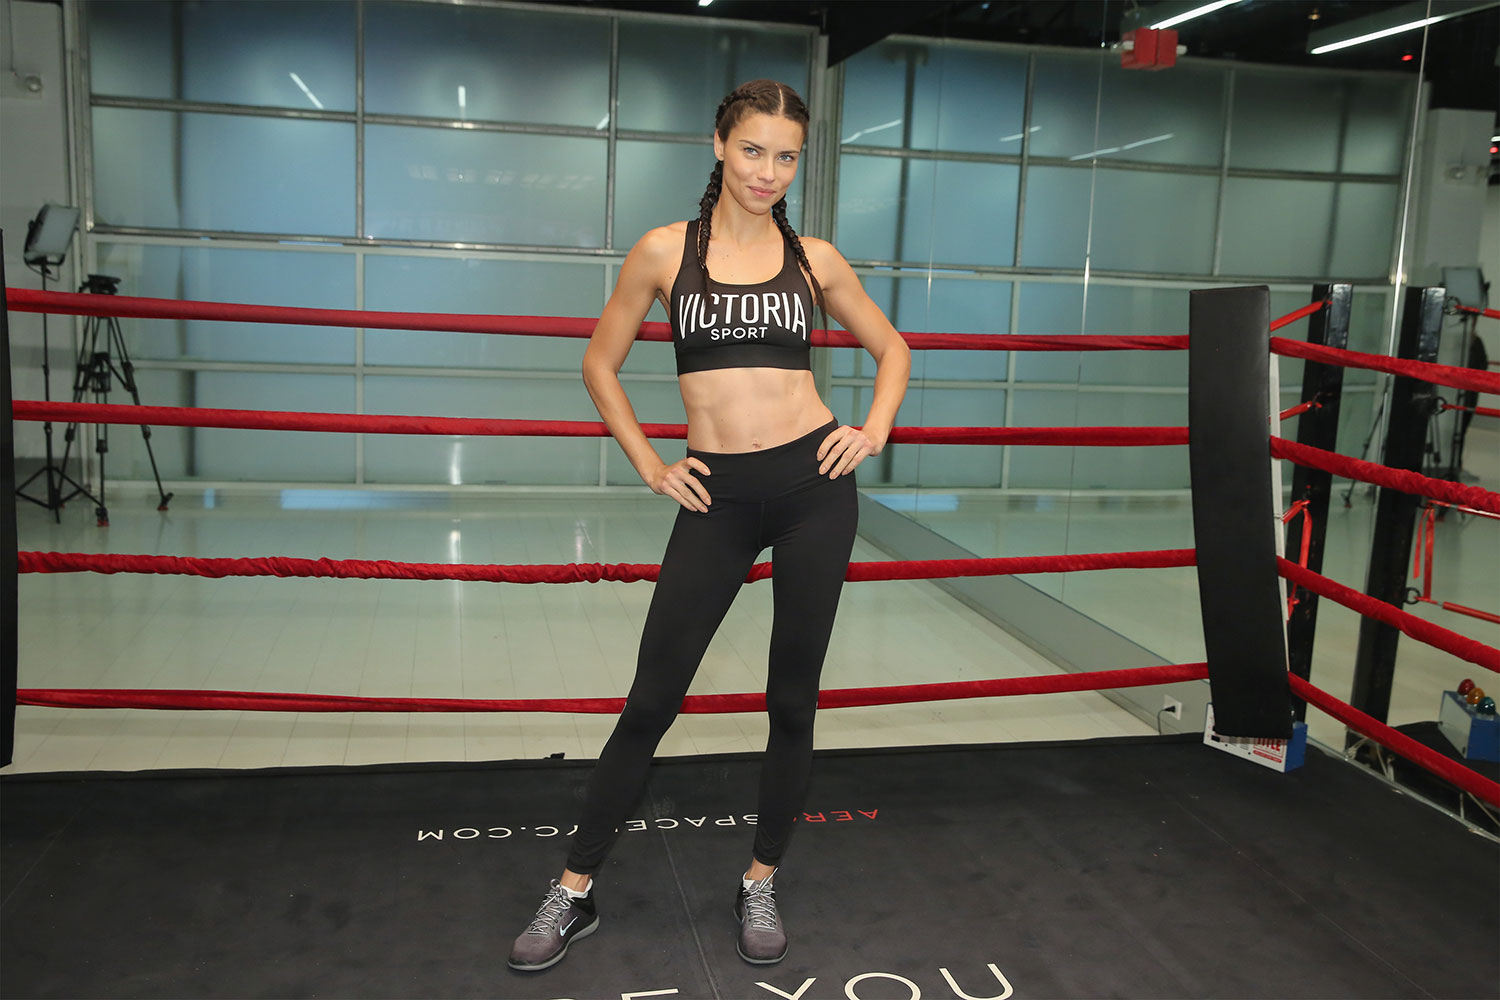 b76b9d1321 These Are The Workouts The Victoria s Secret Models Swear By